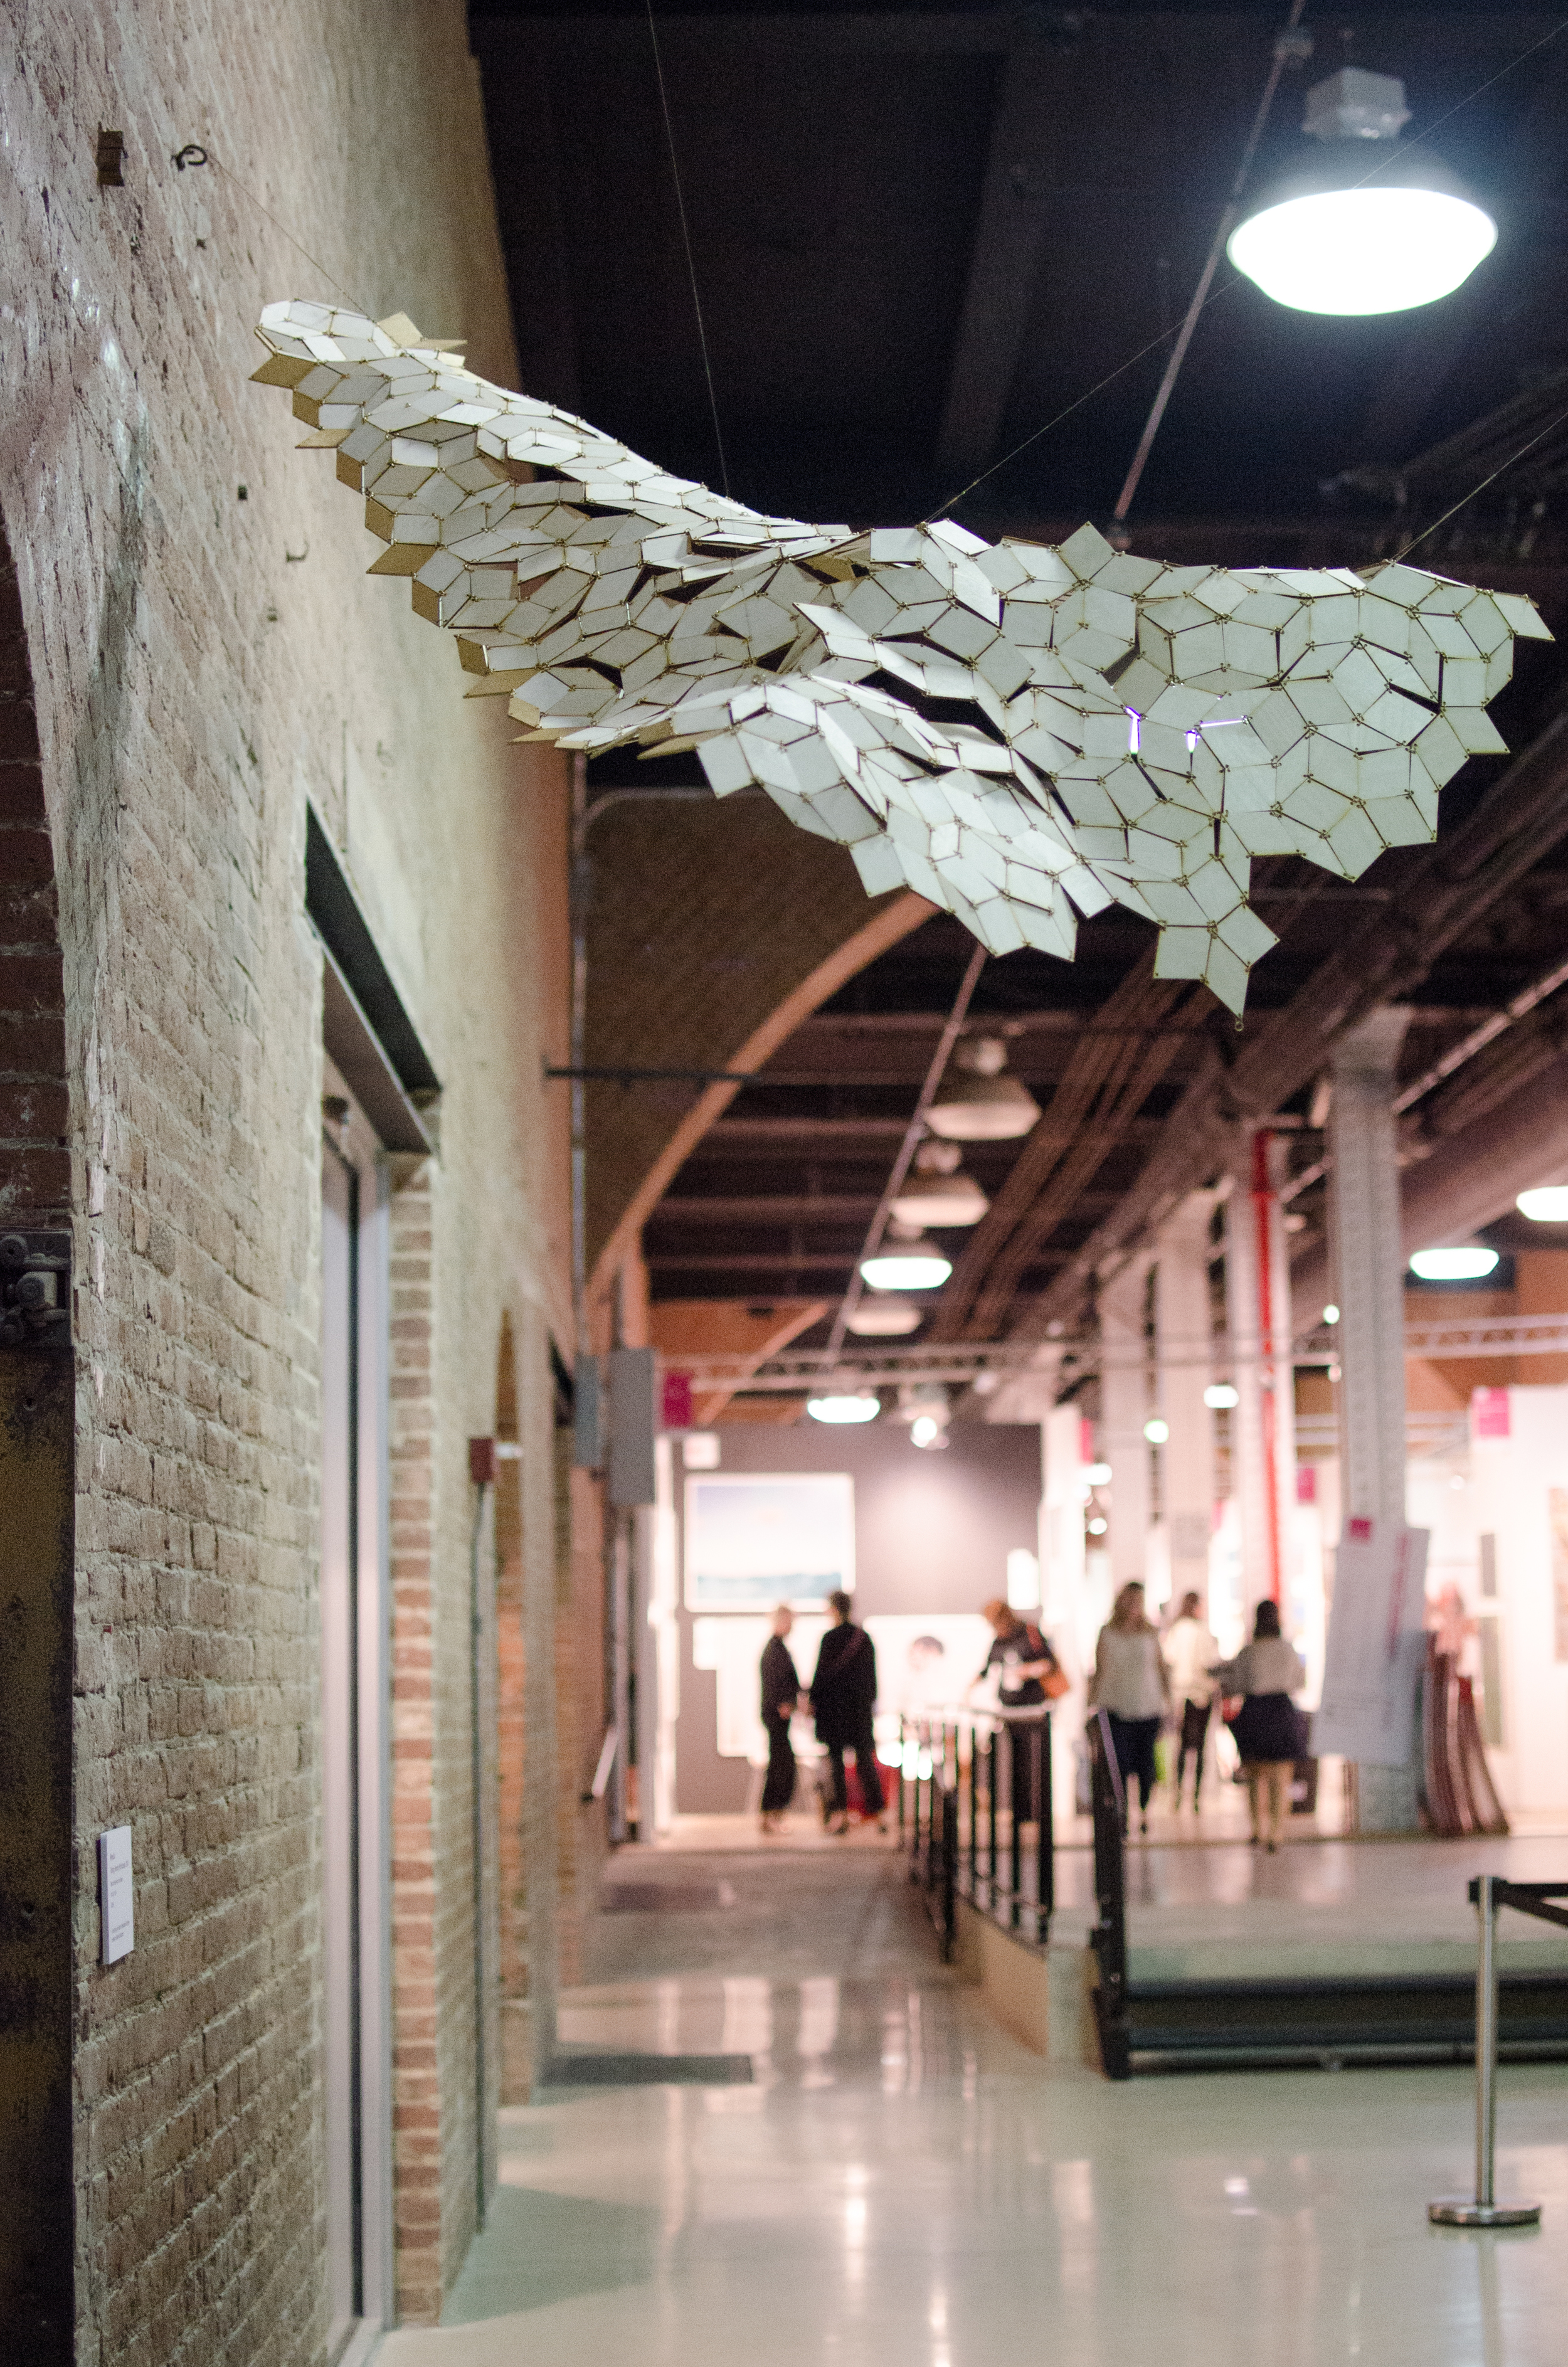 Floating Penrose Rhombuses  at the Affordable Art Fair, September 2014. The gold tiles at the right and left edges of the piece highlight the locations that the tiling loses its mirror symmetry. Photo: Talya Stein